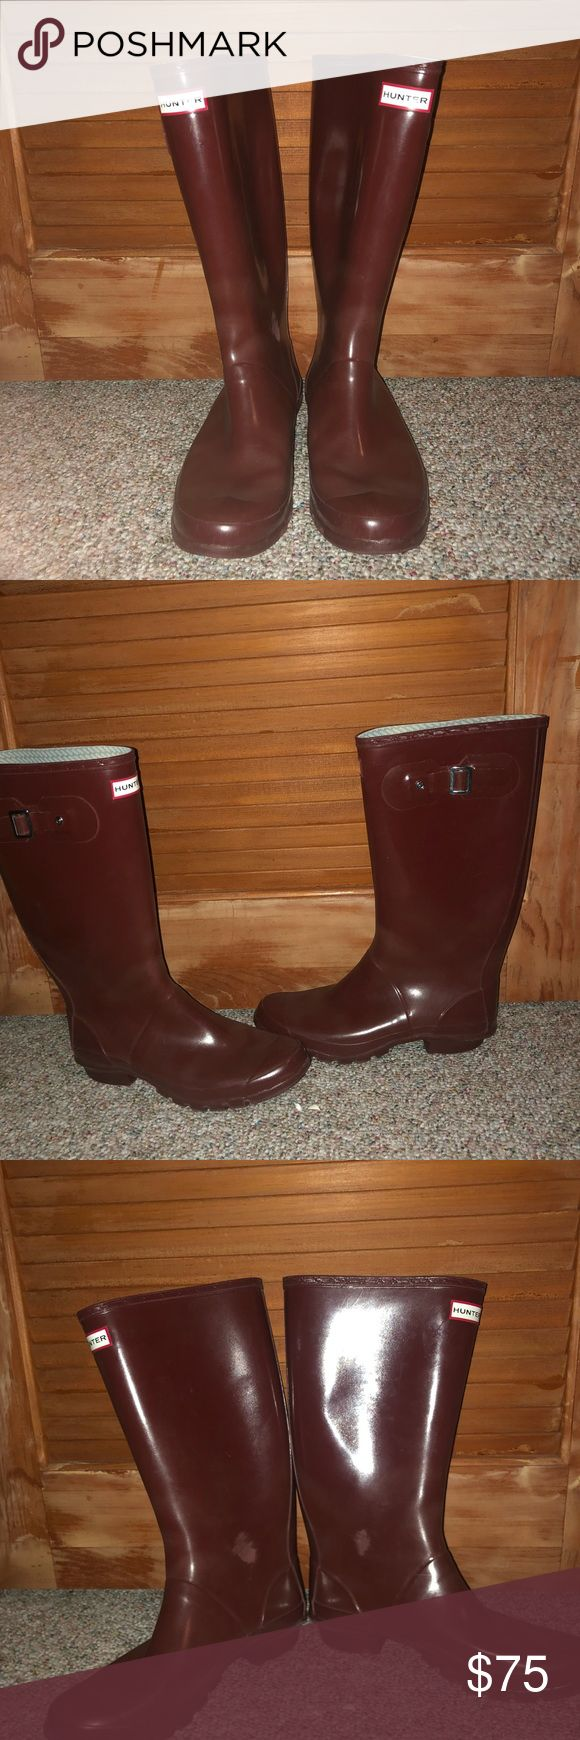 Burgundy / Maroon Hunter boots Huntress wide calf Burgundy/maroon glossy hunter boots! They are the huntress style which has a wider calf than usual. Scuffs on both boots where the ankles have rubbed against each other but unnoticeable when wearing. Some wear but good condition Hunter Shoes Winter & Rain Boots